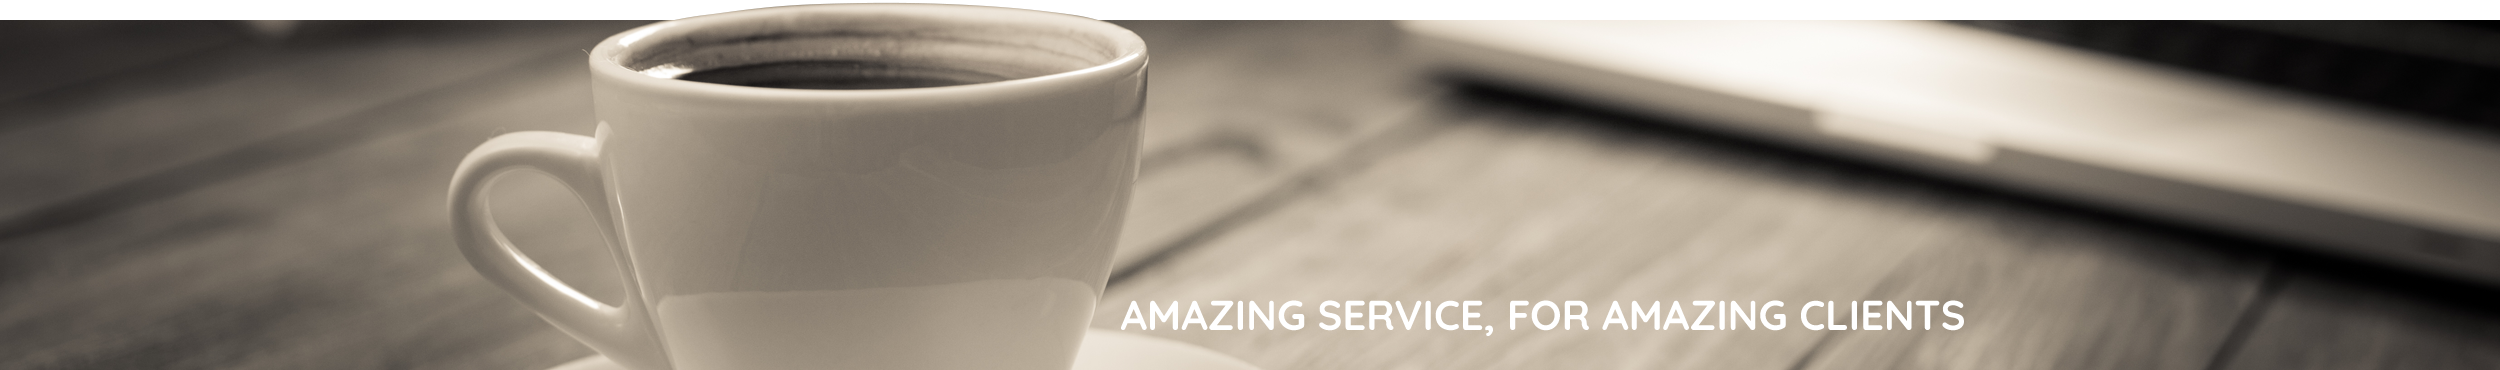 "Clients banner with a cup of coffee on a table. Text reads: ""Amazing service for amazing clients."""